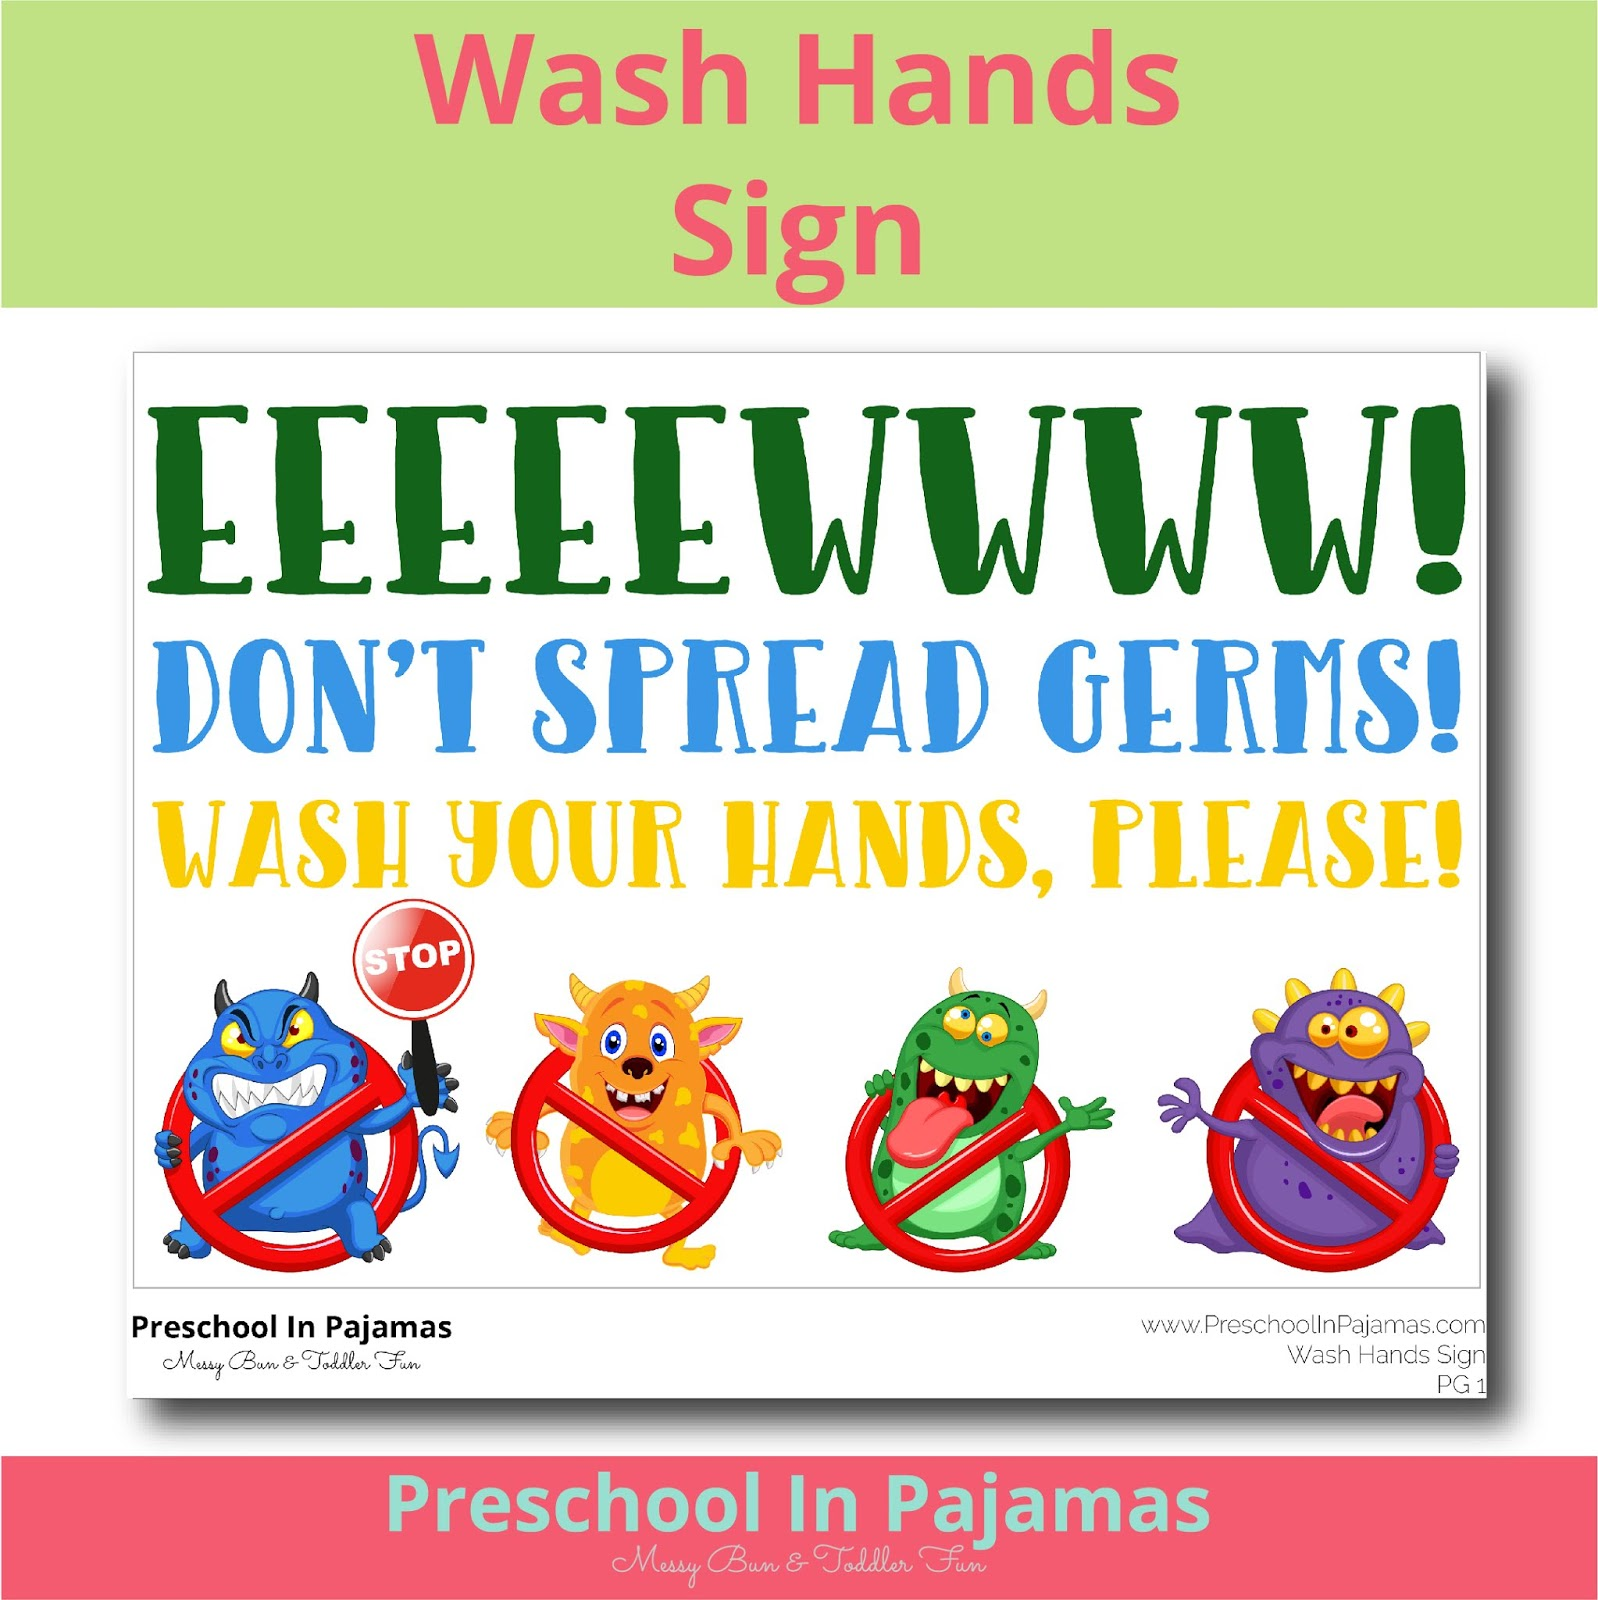 photo regarding Wash Hands Sign Printable known as Cost-free CLASSROOM Clean Palms Signal PRINTABLE Preschool Inside of Pajamas